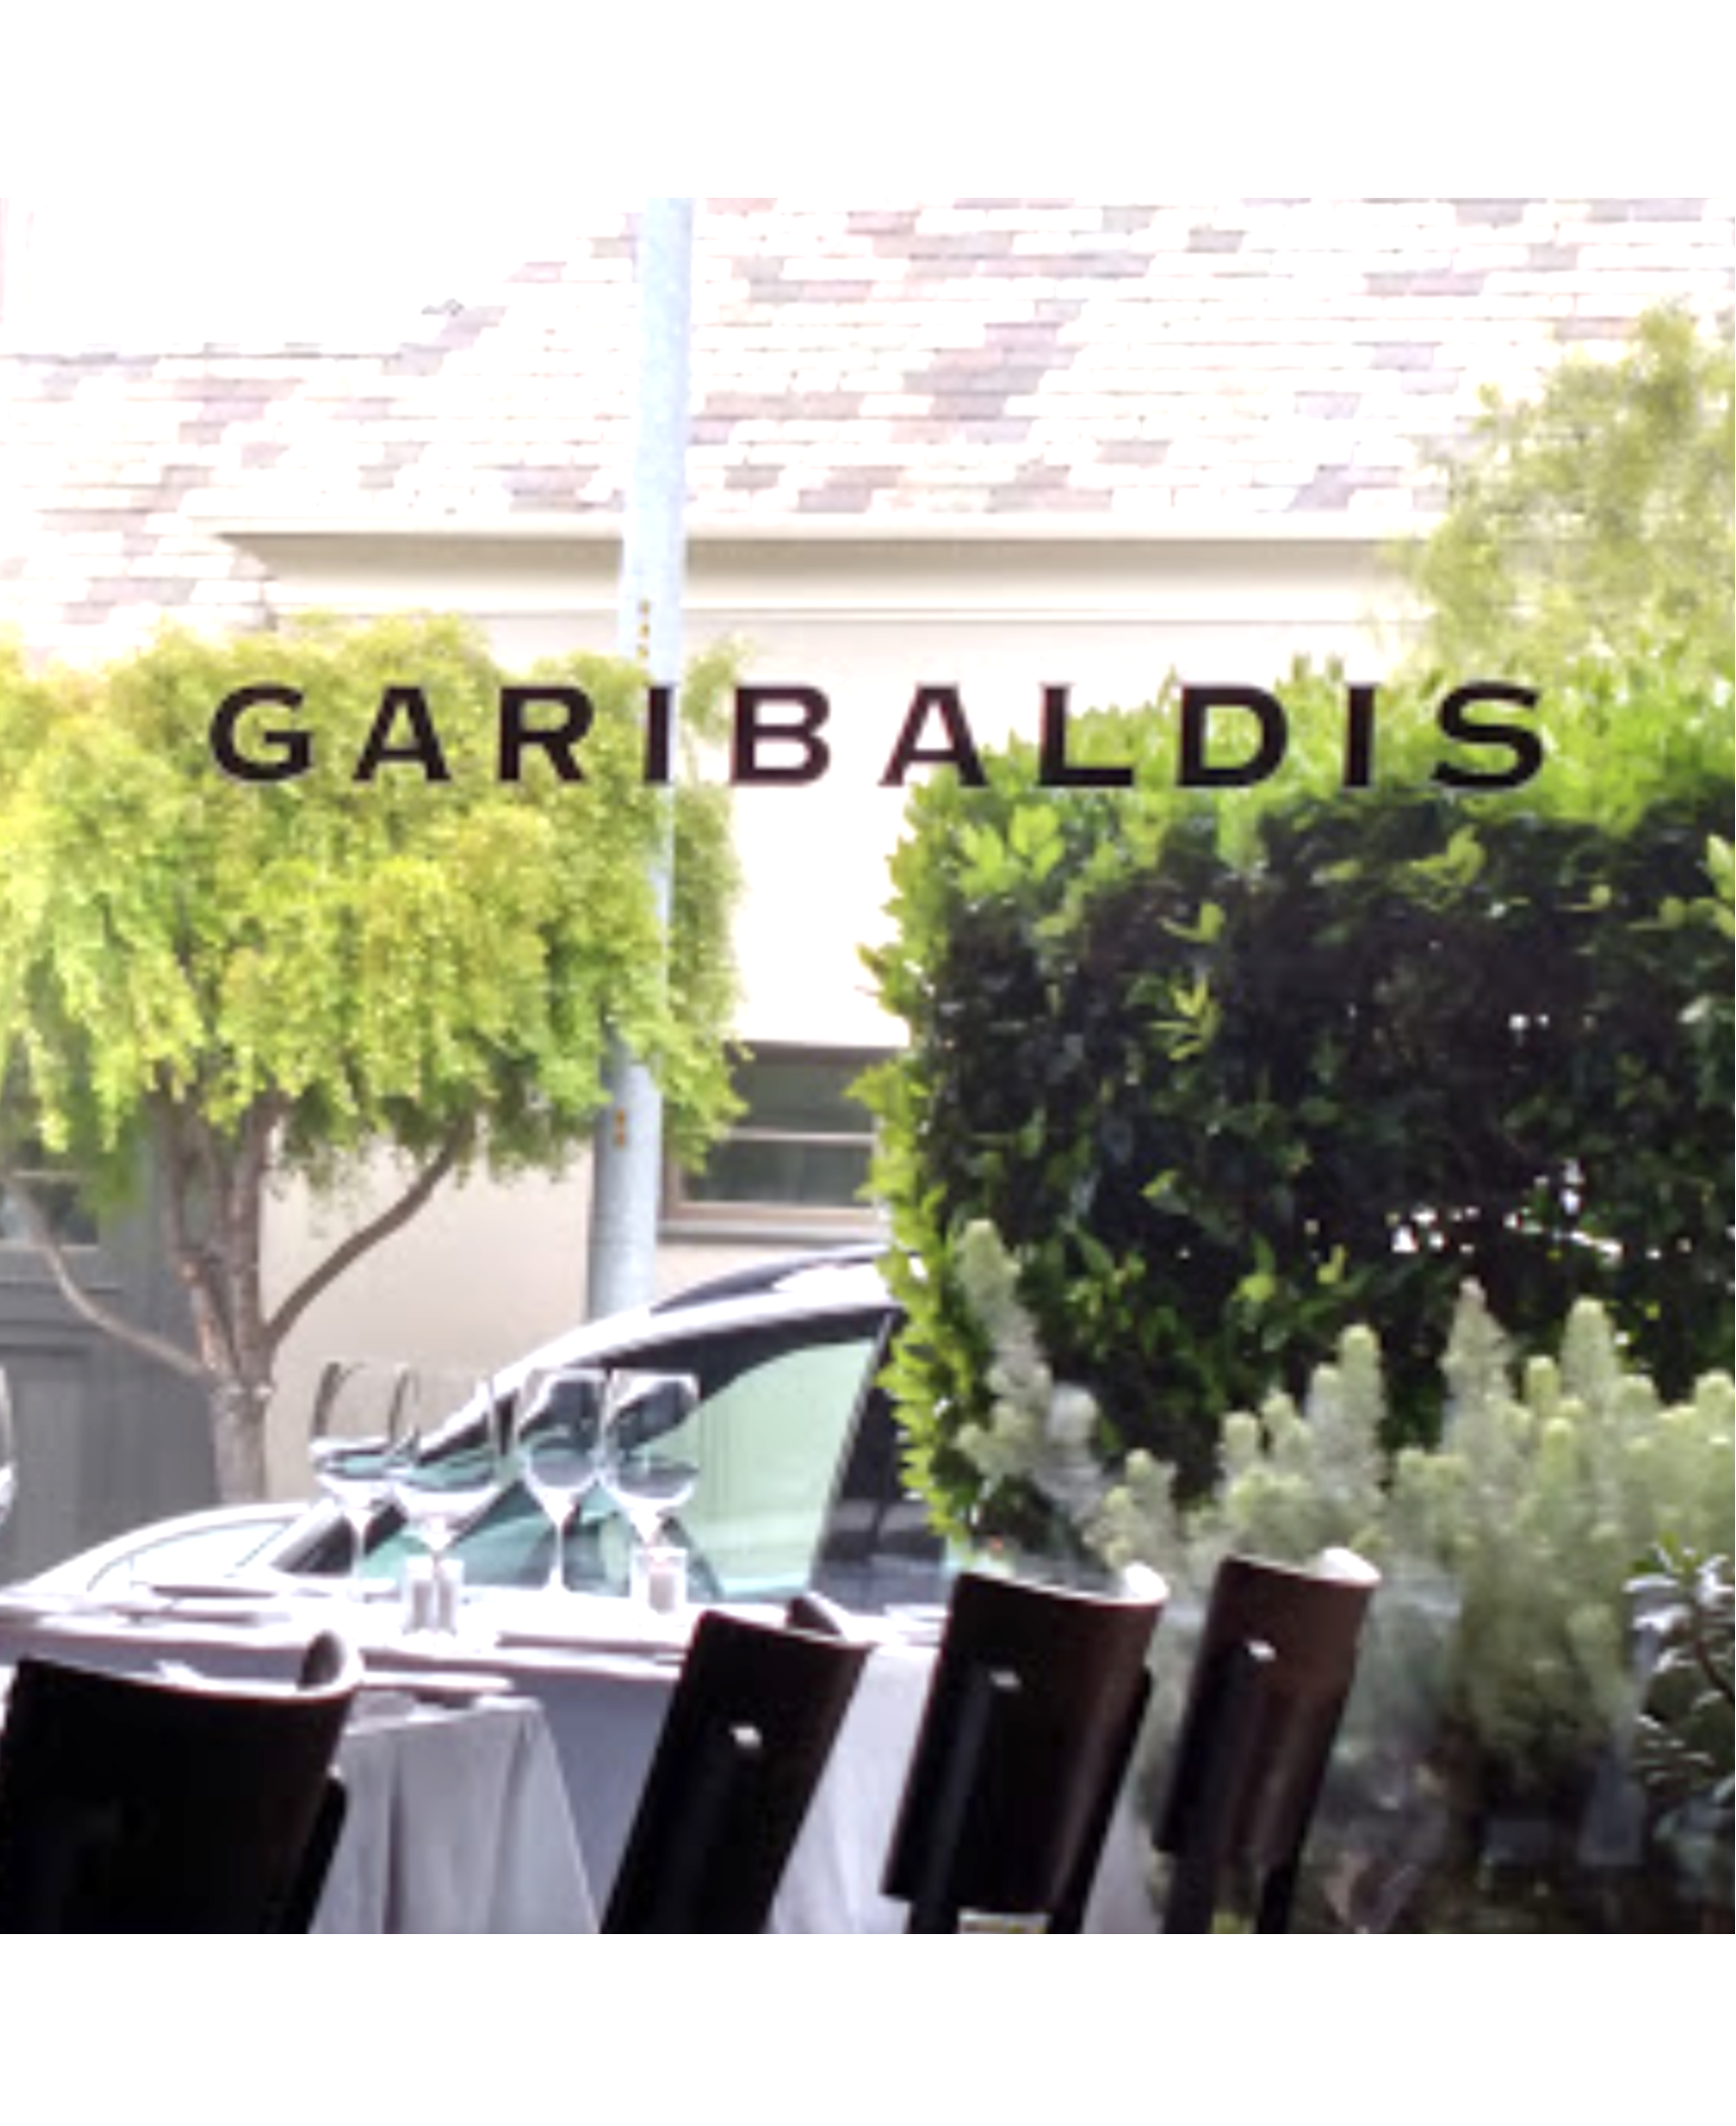 """Garibaldis - A Presidio Heights dining institution for over 20 years, Garibaldis is always a great choice. Self-described as """"the quintessential SF neighborhood restaurant"""", we'd be hard-pressed to disagree with their mix of classics done just right. We love a lunchtime break here to rest our feet and strategize the remaining stops on our design-lovers tour. Whether you're down for a perfect burger, prefer to keep it light with a Grilled Chicken and Farro Salad, or are ready to tuck into our personal 'naughty and nice' favorite combo, Risotto Croquettes and a Chopped Salad -- you can't go wrong.visit website"""